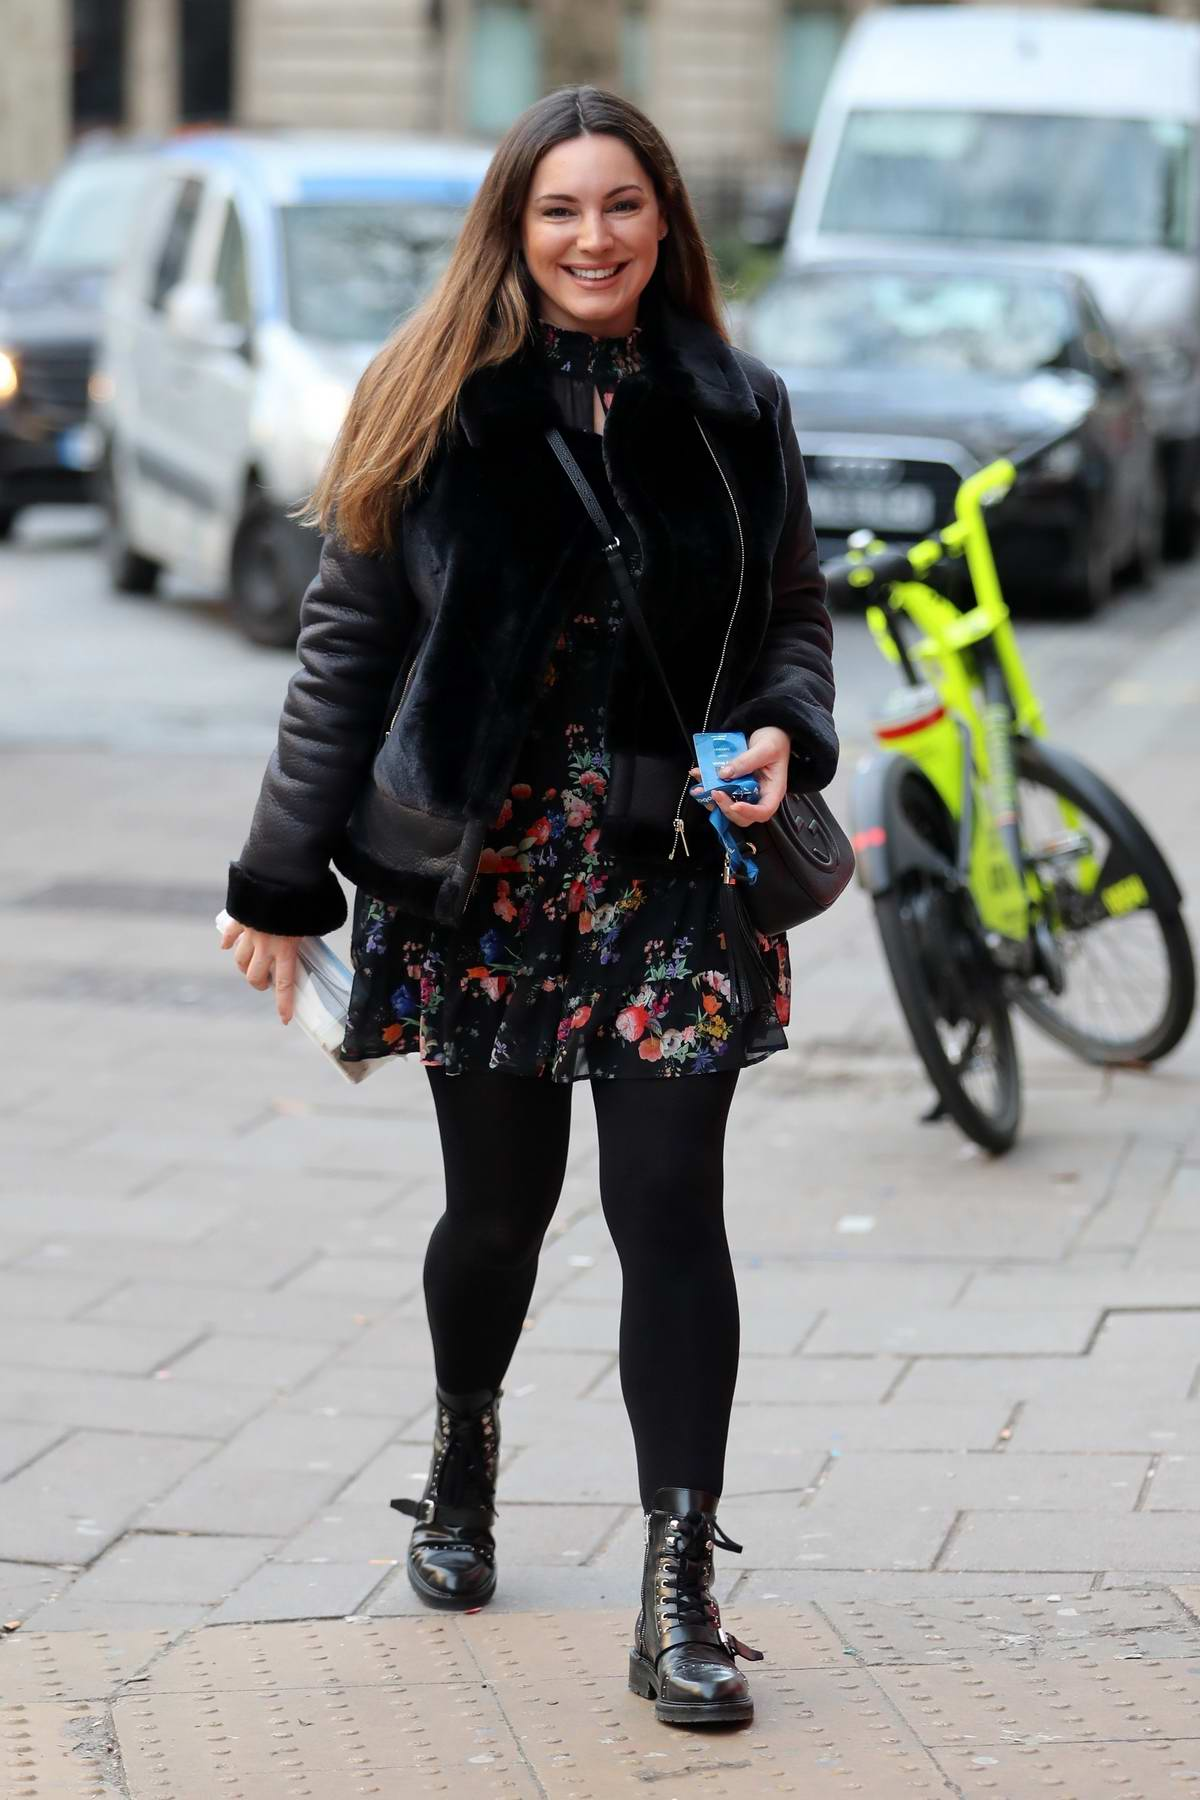 Kelly Brook looks great in a floral print mini dress as she arrives at Heart Radio in London, UK